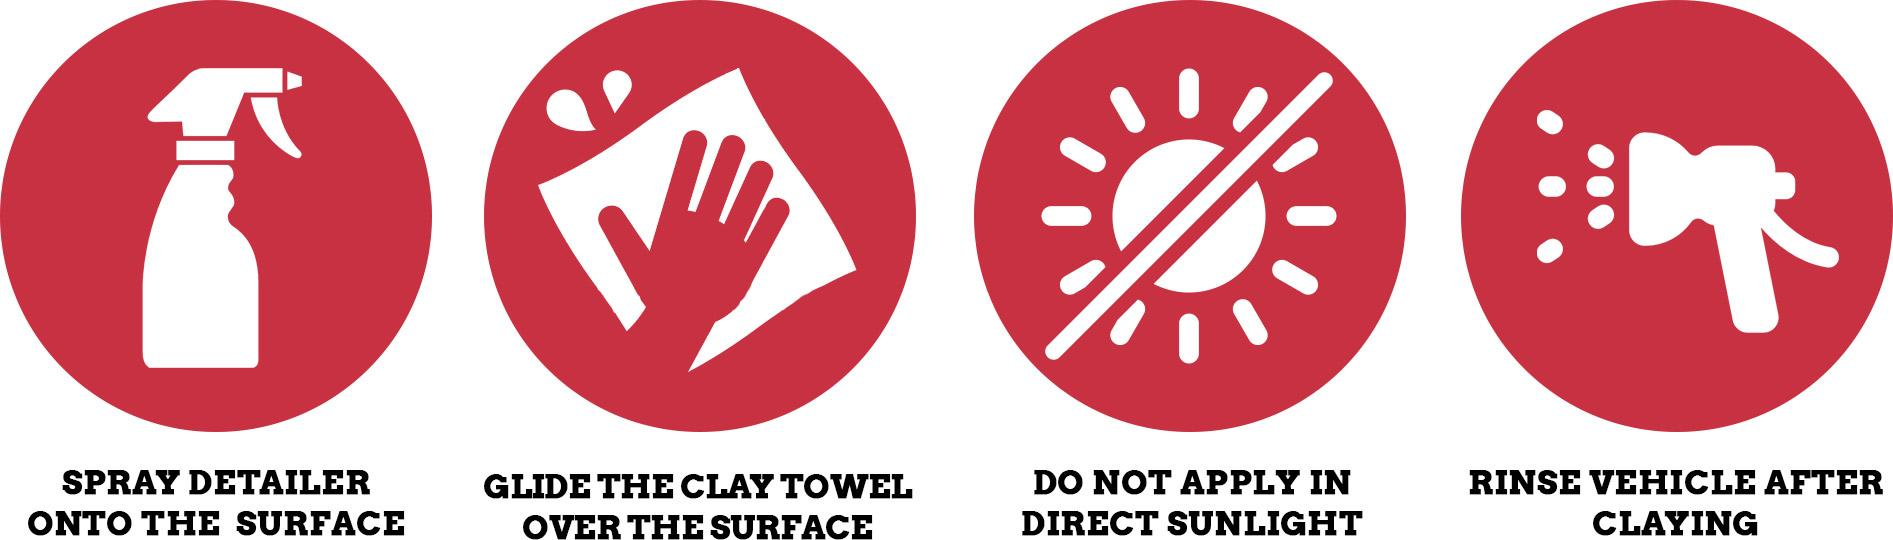 claytowel-website-icons.jpg